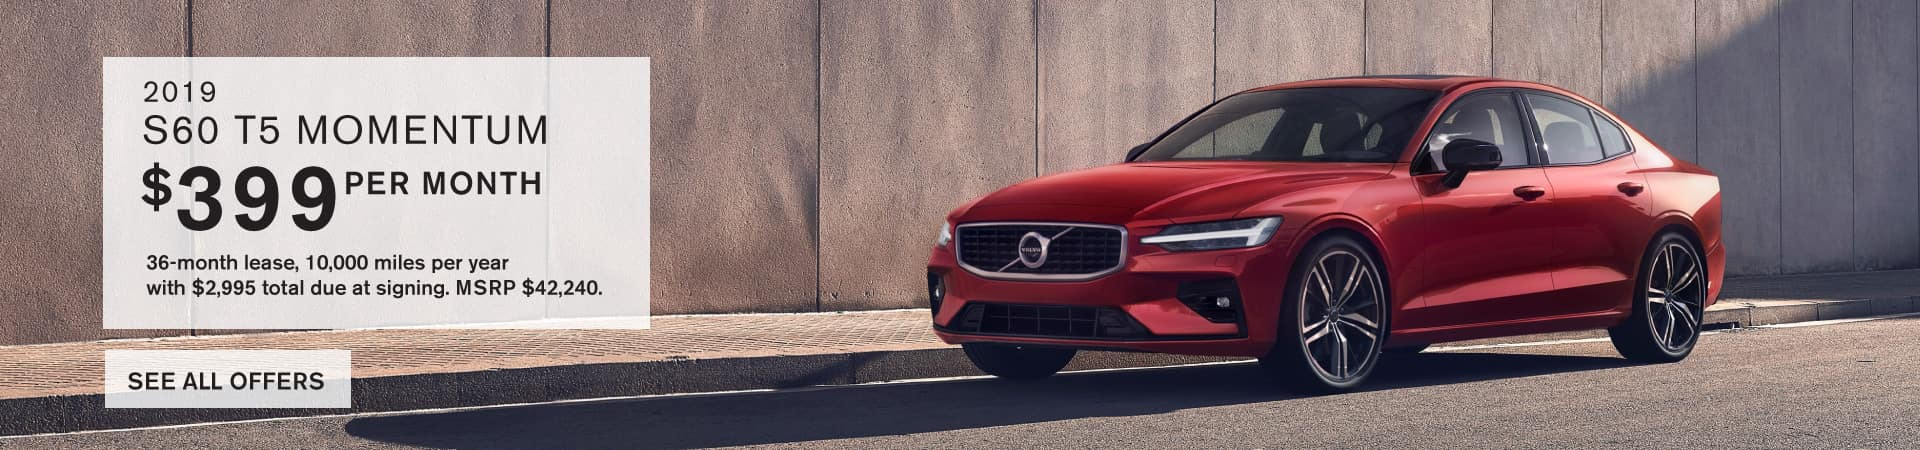 Autobahn Volvo Fort Worth   2019 S60 Lease Special